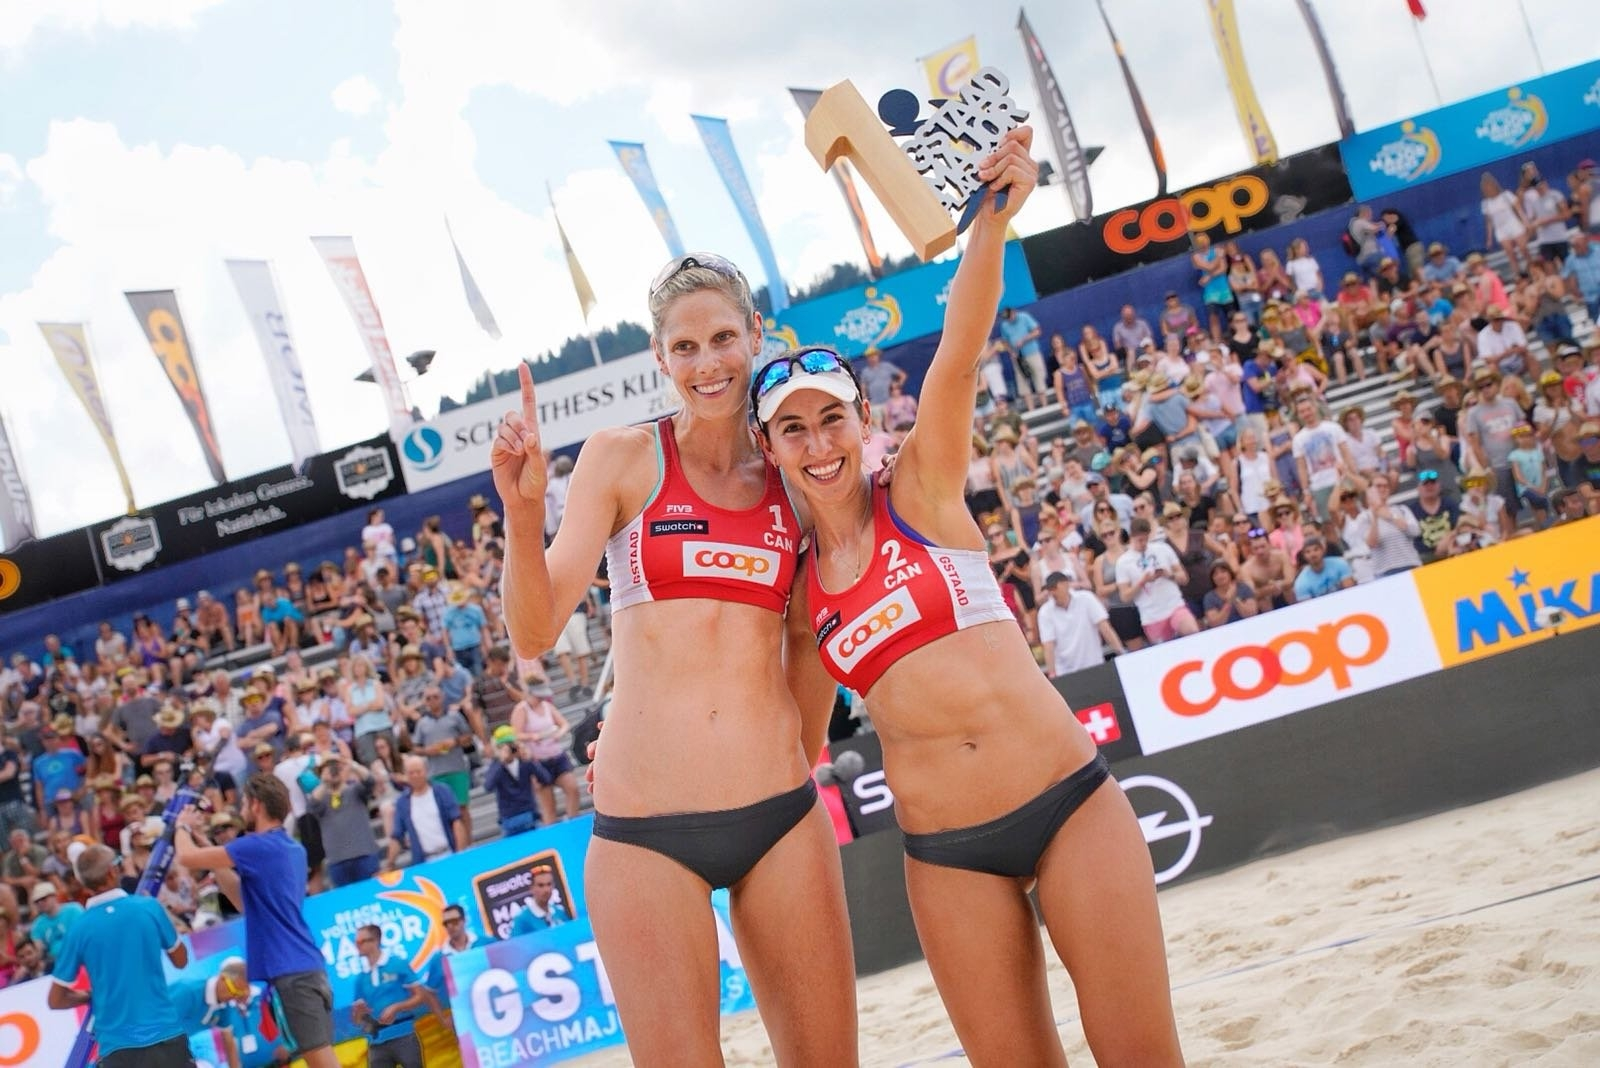 Melissa and Sarah celebrate their first gold medals in Gstaad